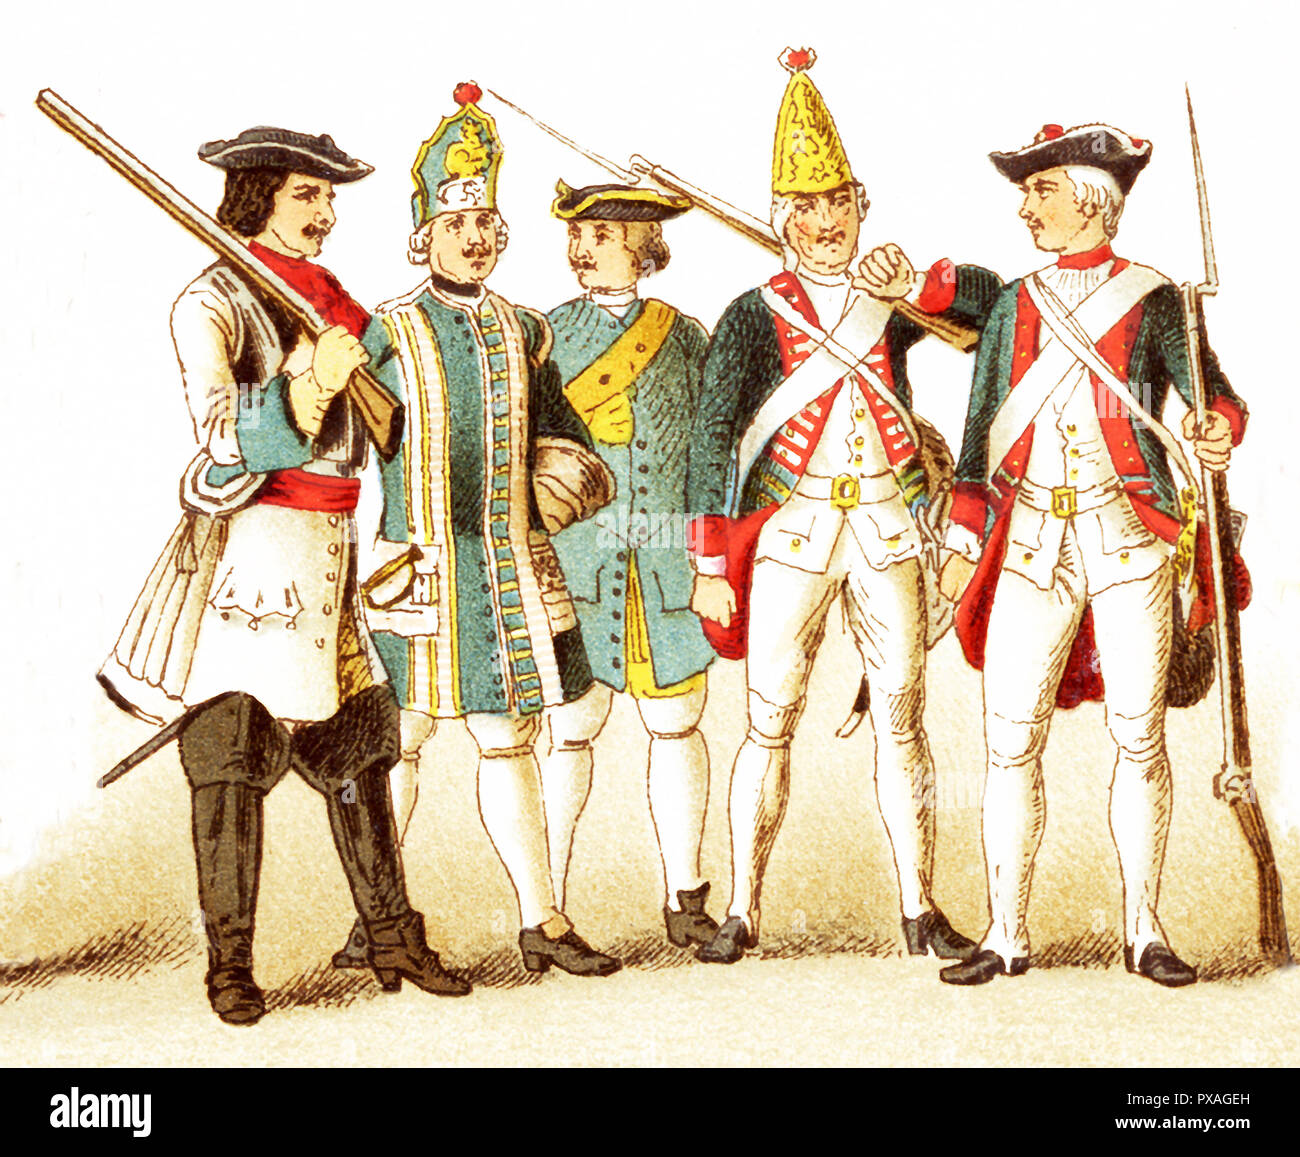 The Figures represented here are Germans and Prussians and are, from left to right: a Brandenberg cuirassier in 1700, a Prussian infantry musician in 1704,  a Prussian artillery man in 1708, a Prussian grenadier in 1756, and a Prussian infantry in 1741 The illustration dates to 1882. - Stock Image